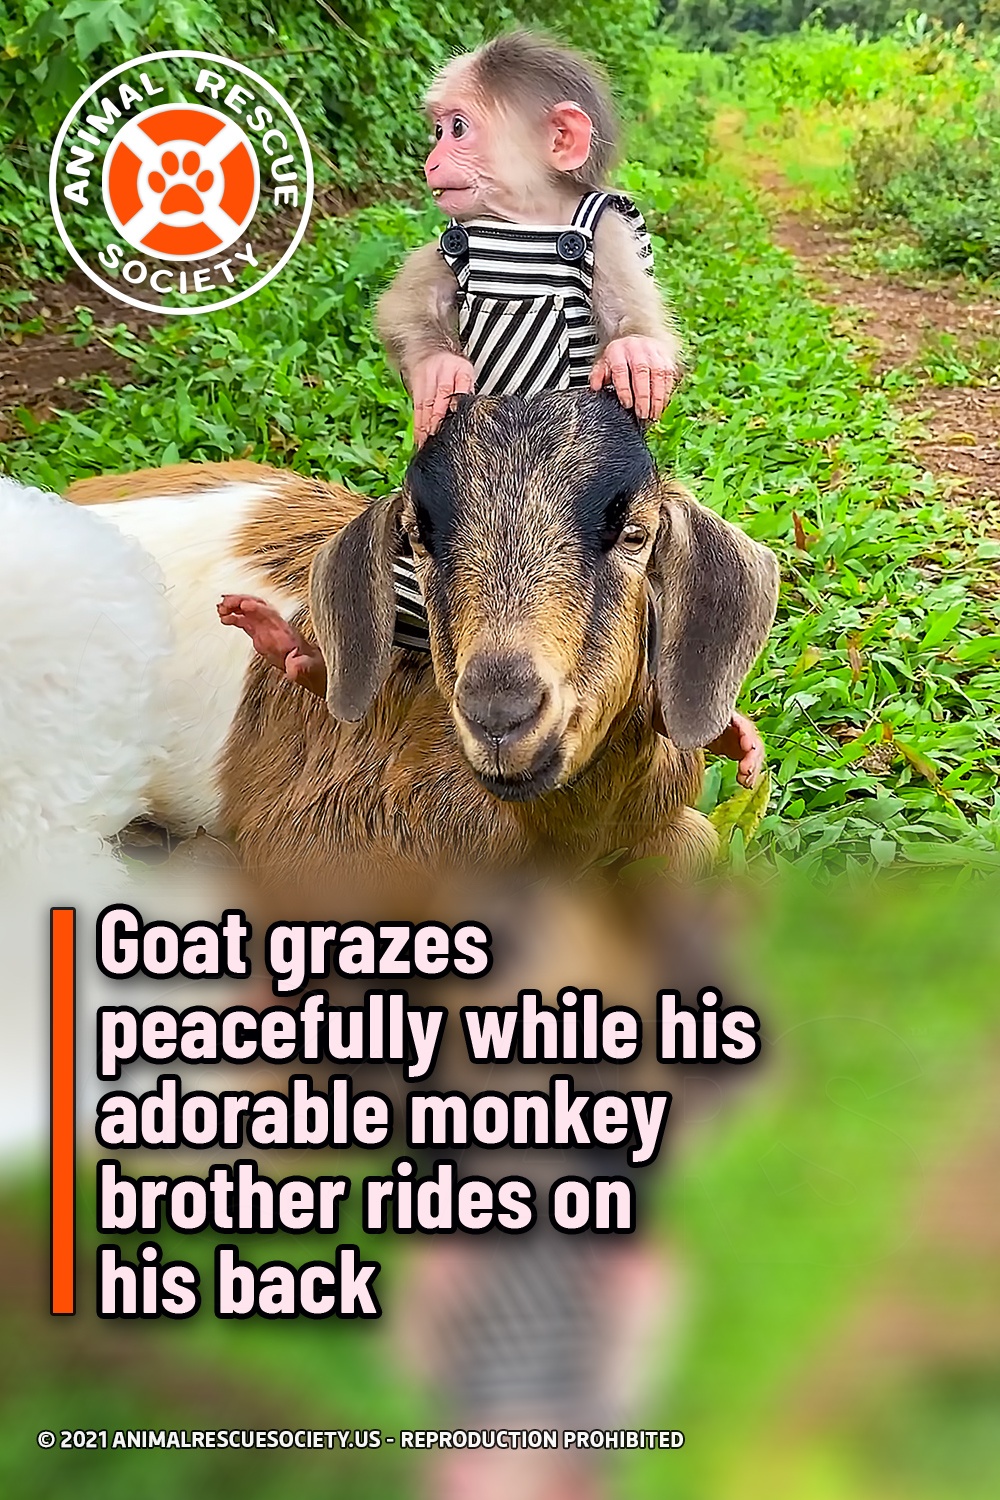 Goat grazes peacefully while his adorable monkey brother rides on his back